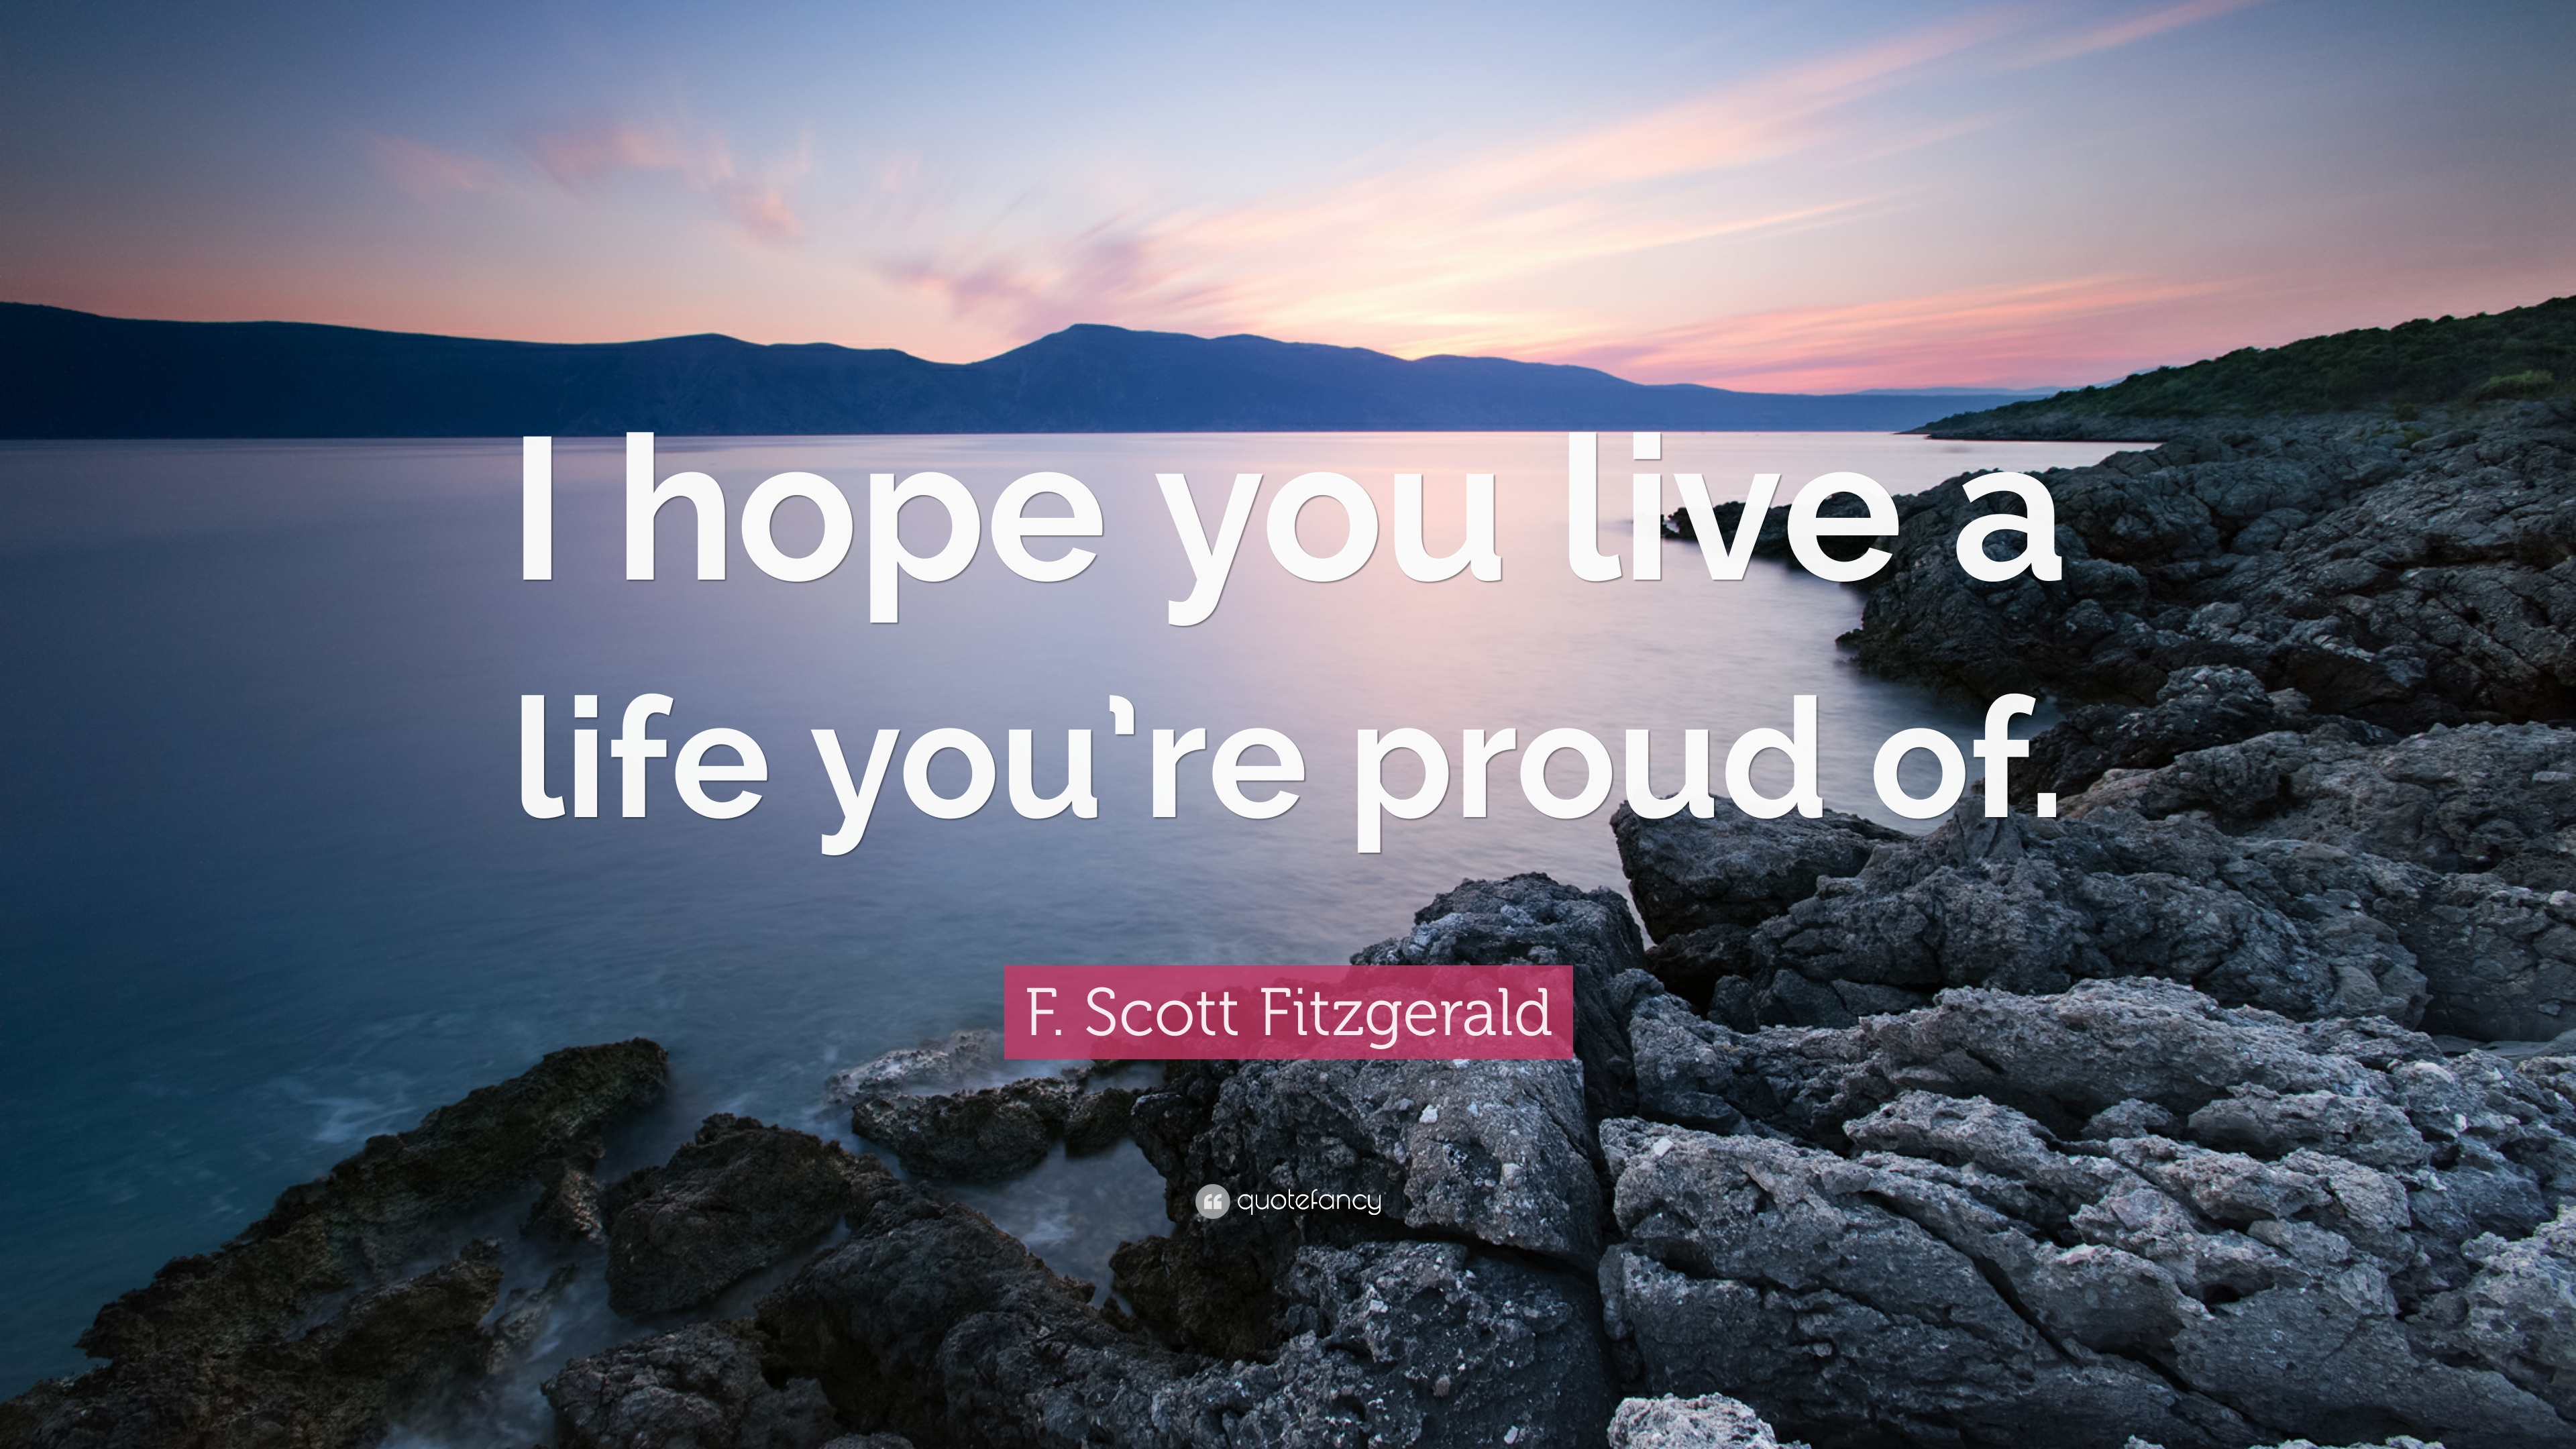 F Scott Fitzgerald Quote I Hope You Live A Life Youre Proud Of